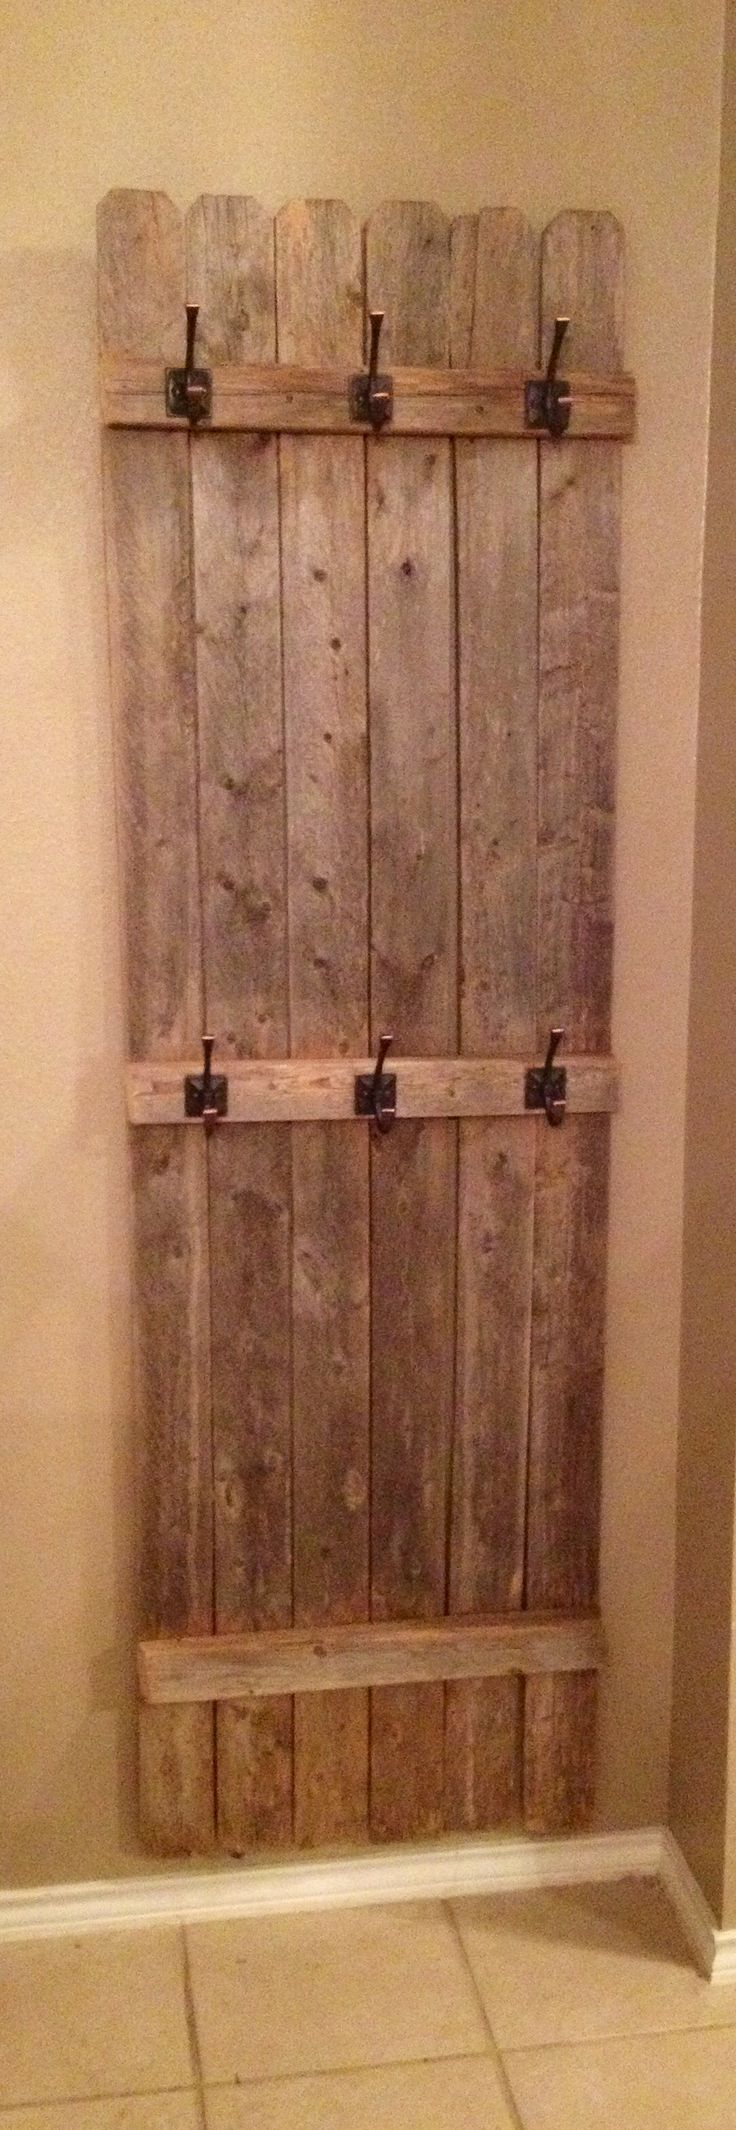 Old fence turned coat rack. VB